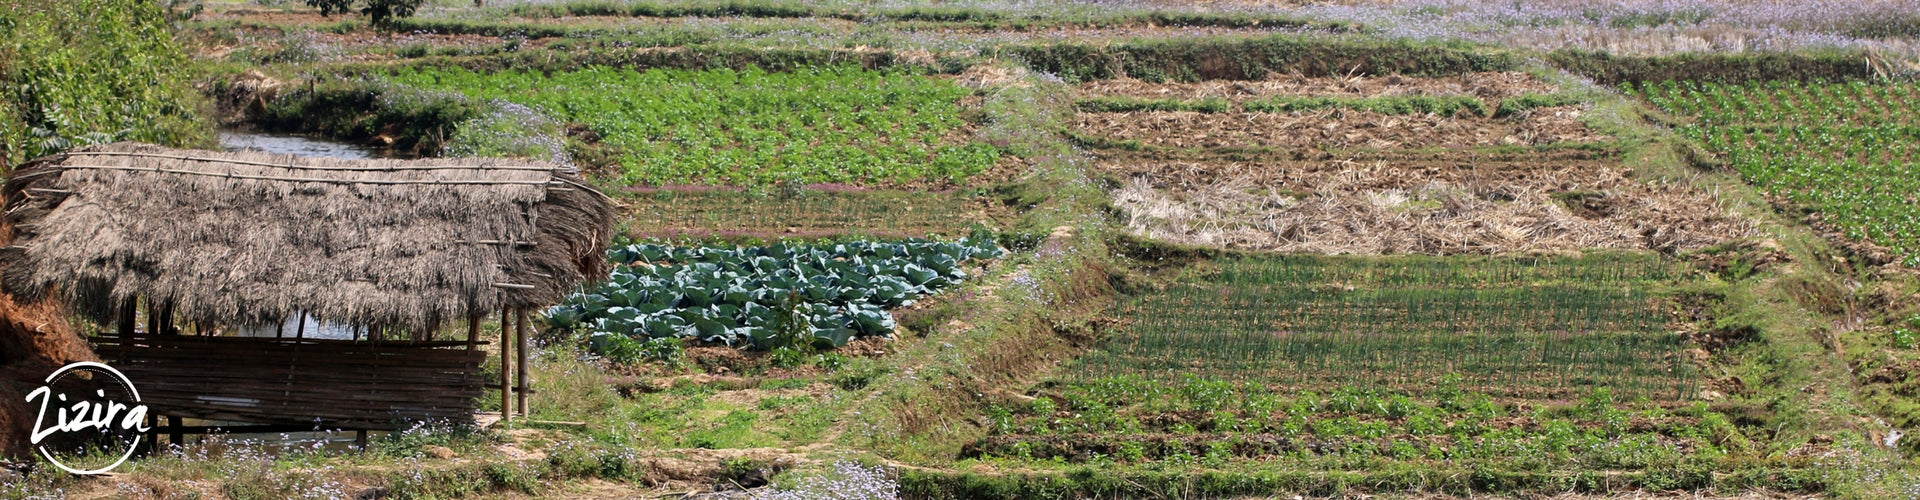 Meghalaya Government Schemes for Agriculture for Farmers and Unemployed Educated Youth